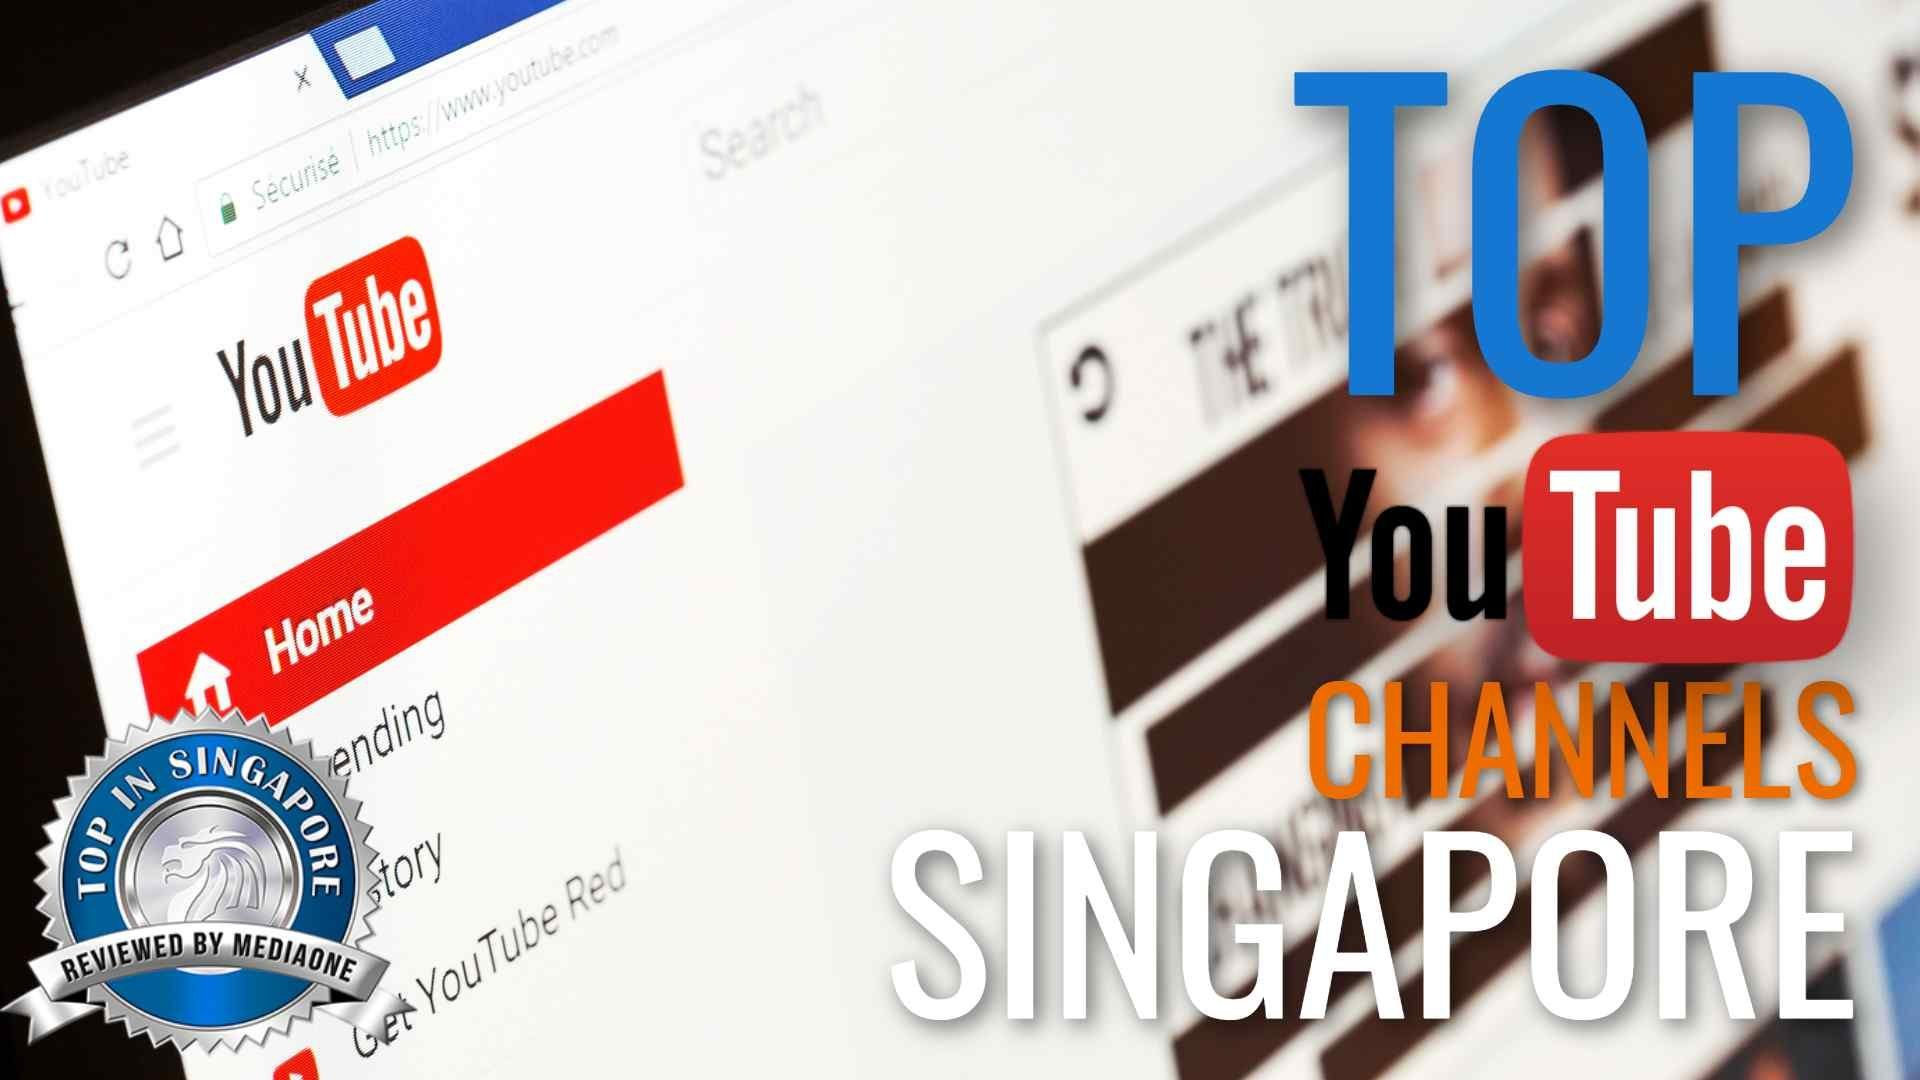 Top YouTube Channels in Singapore